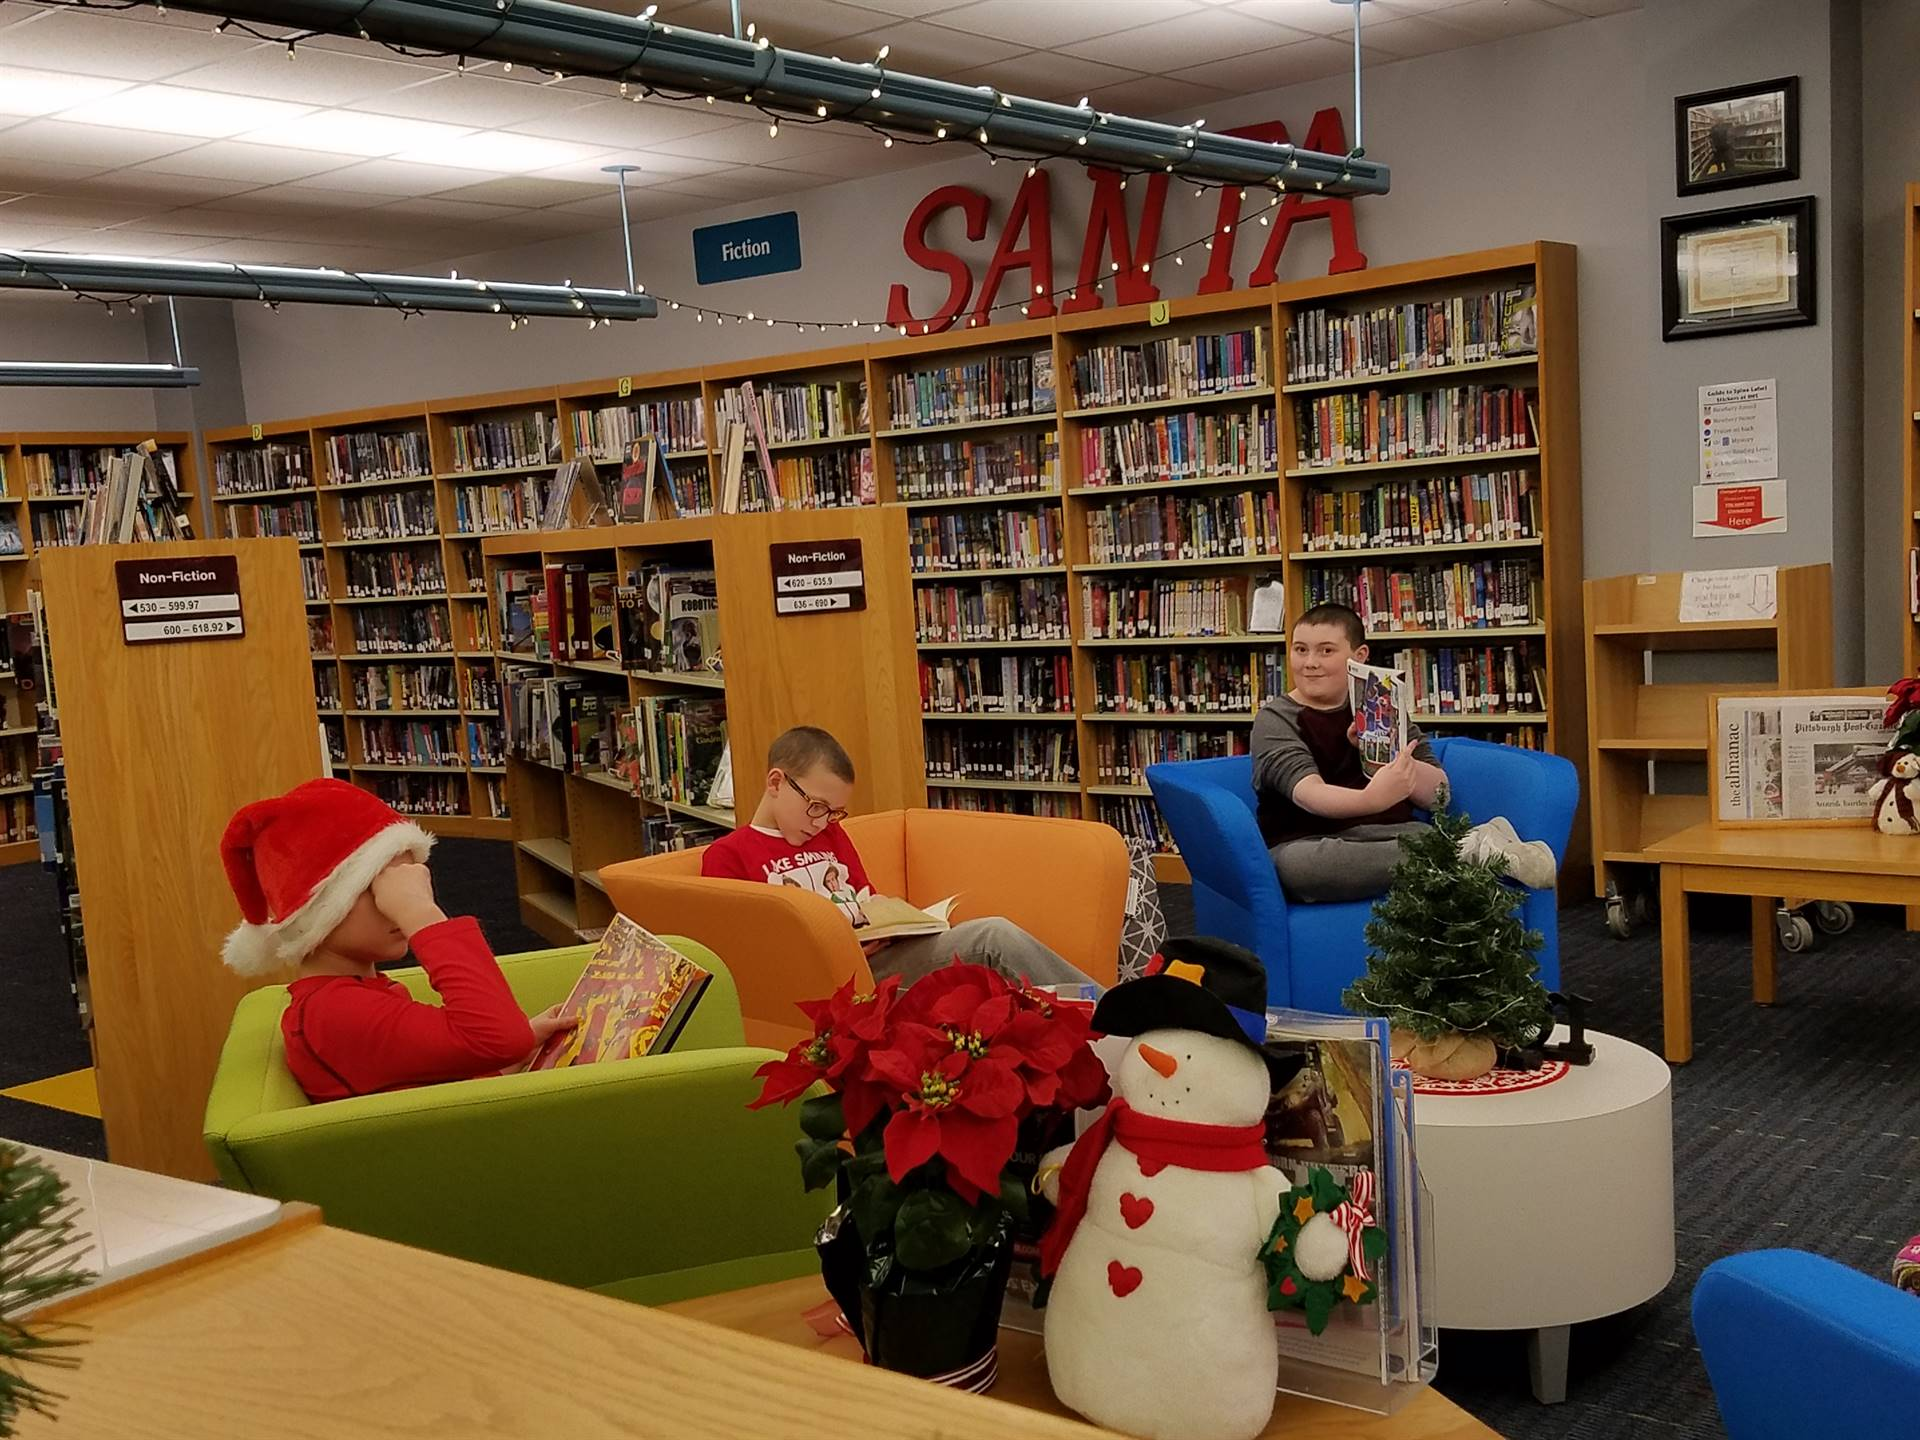 Friends enjoying some holiday reading chillout time.